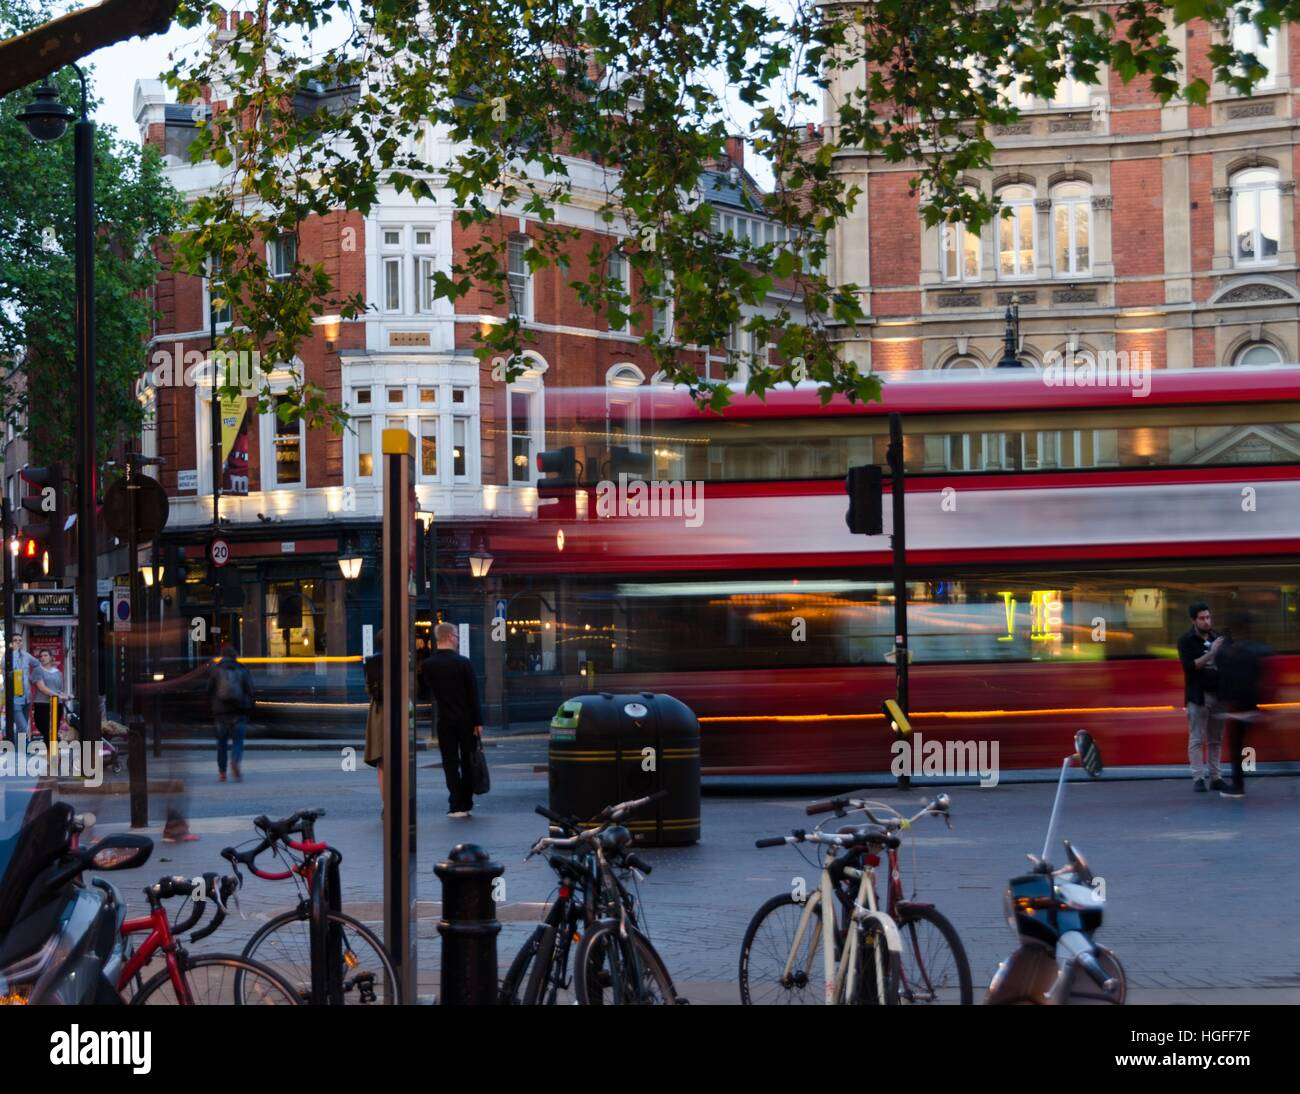 A time lapse of a London bus on Shaftesbury Avenue, London, England. - Stock Image